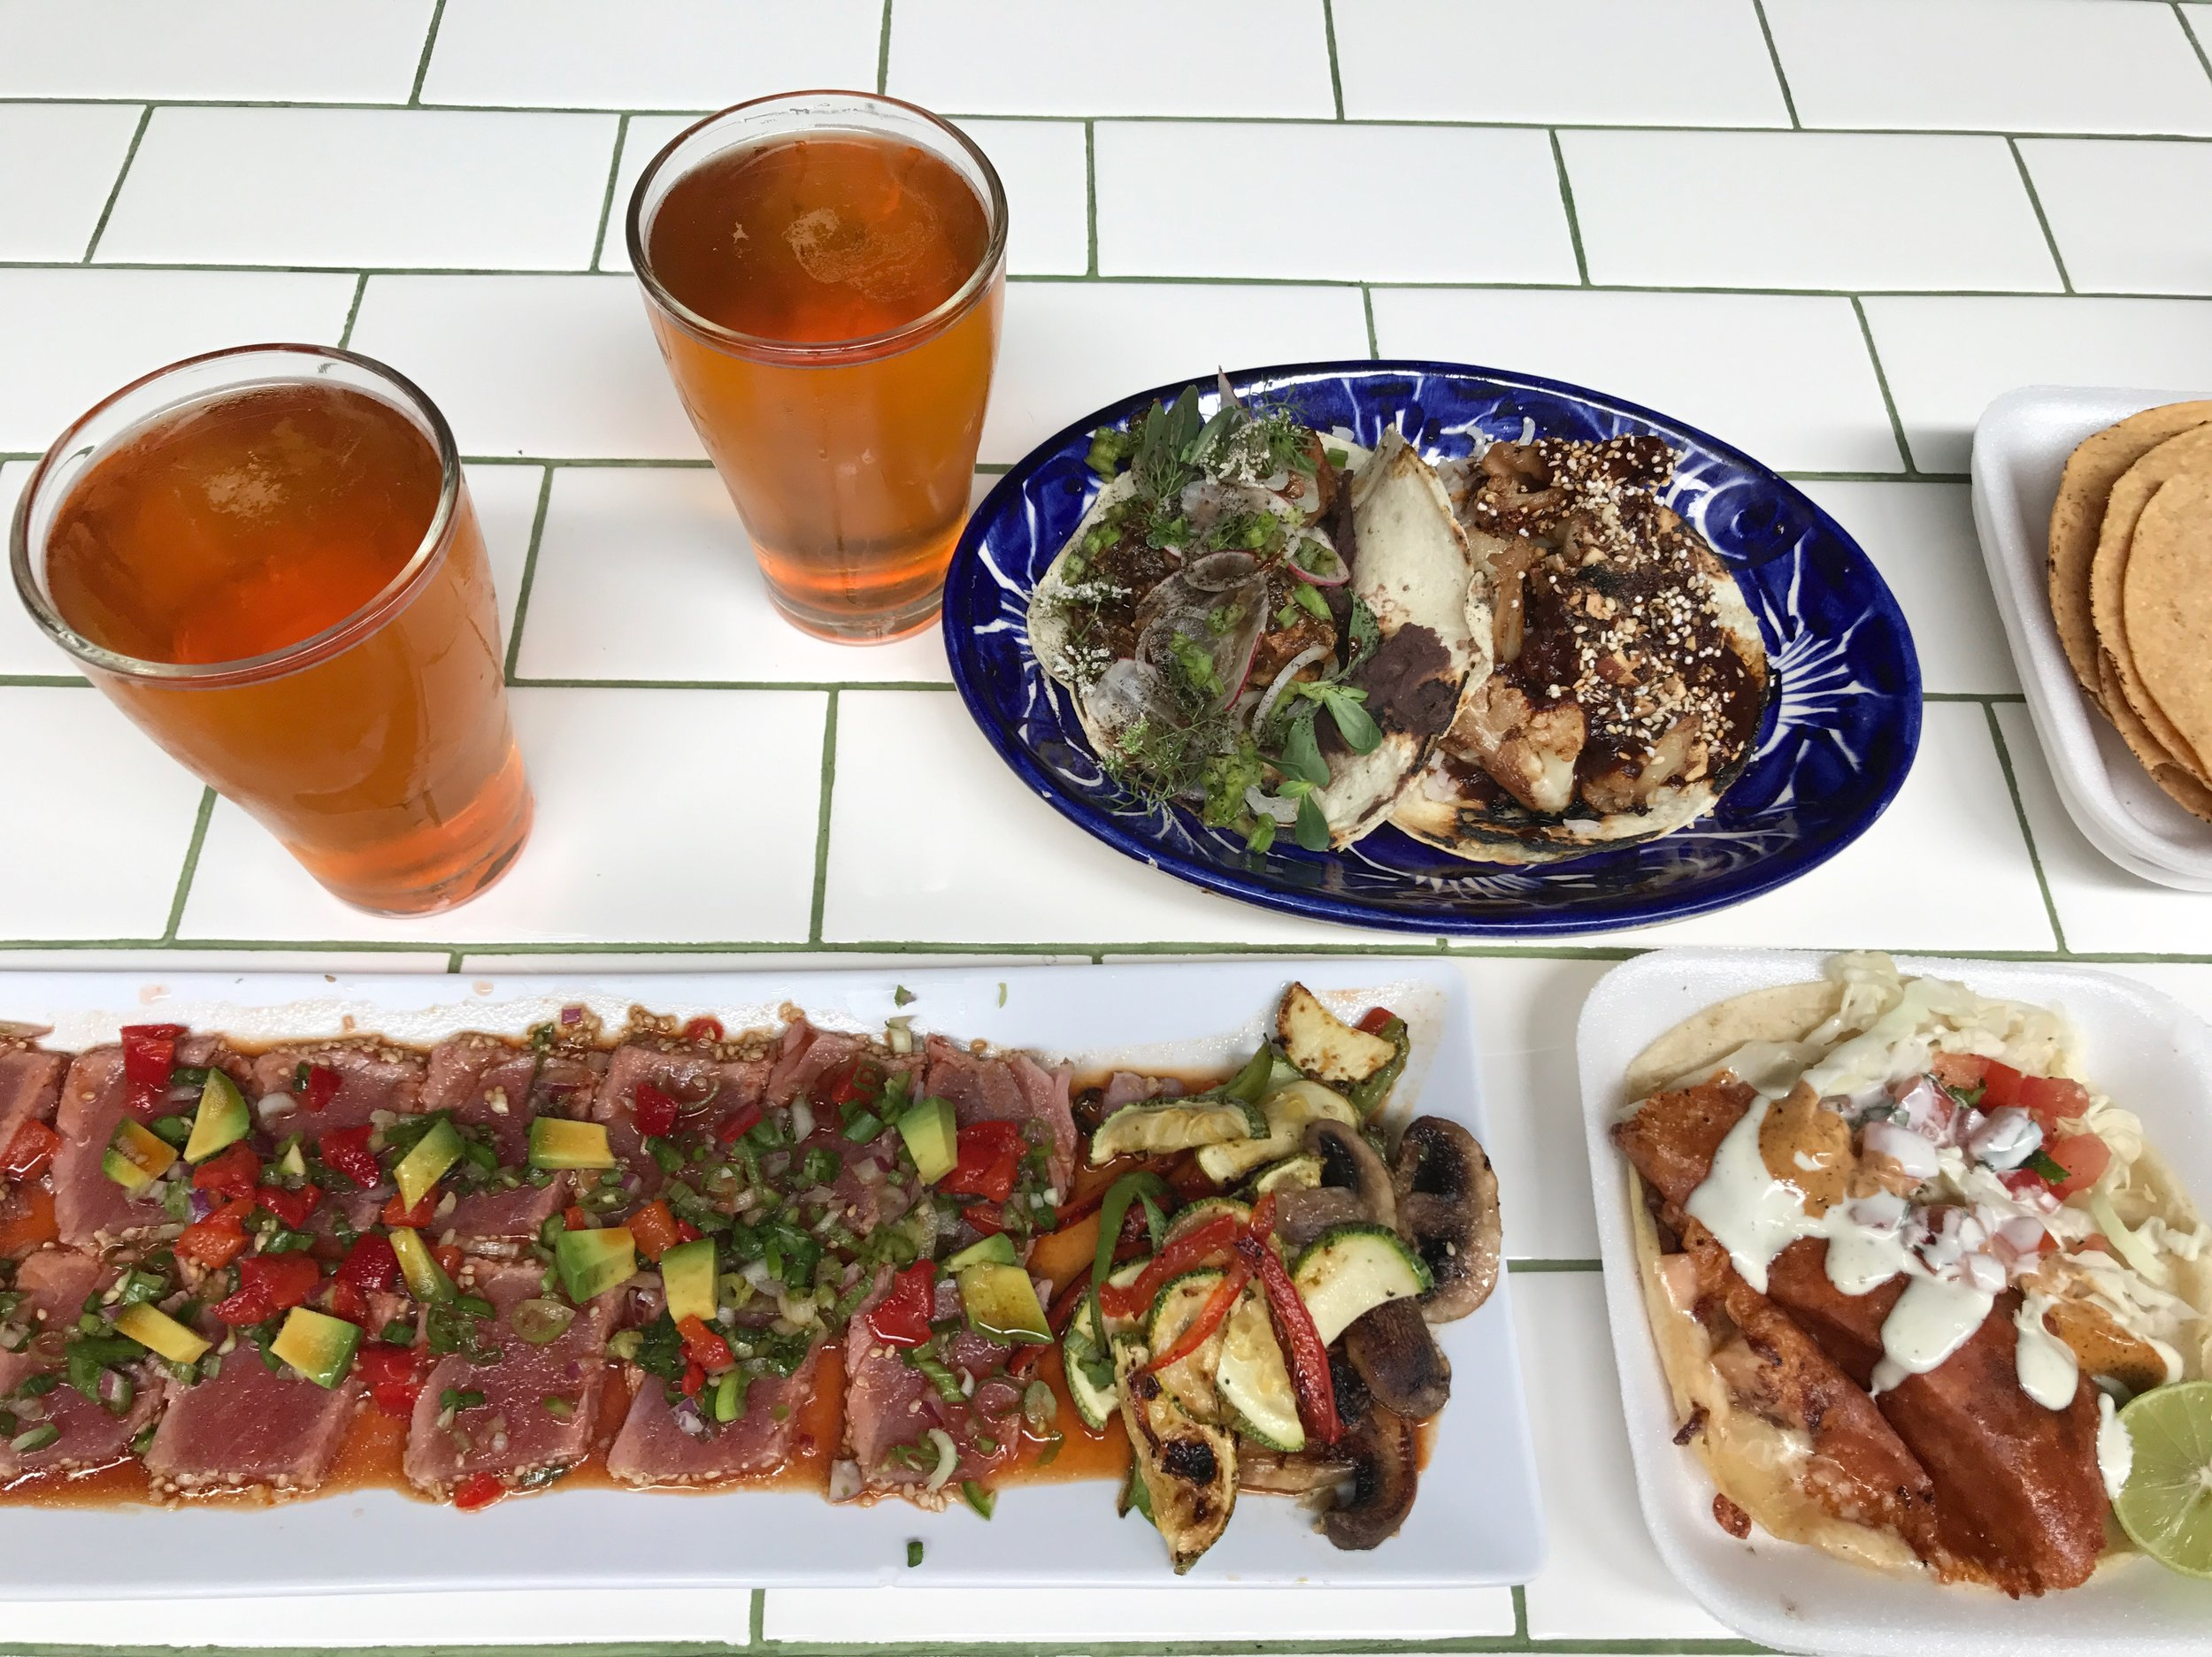 Draft pours from Cervecería Insurgente beer with tacos from La Camelita and raw tuna from a vendor at Telefónica Gastro Park.